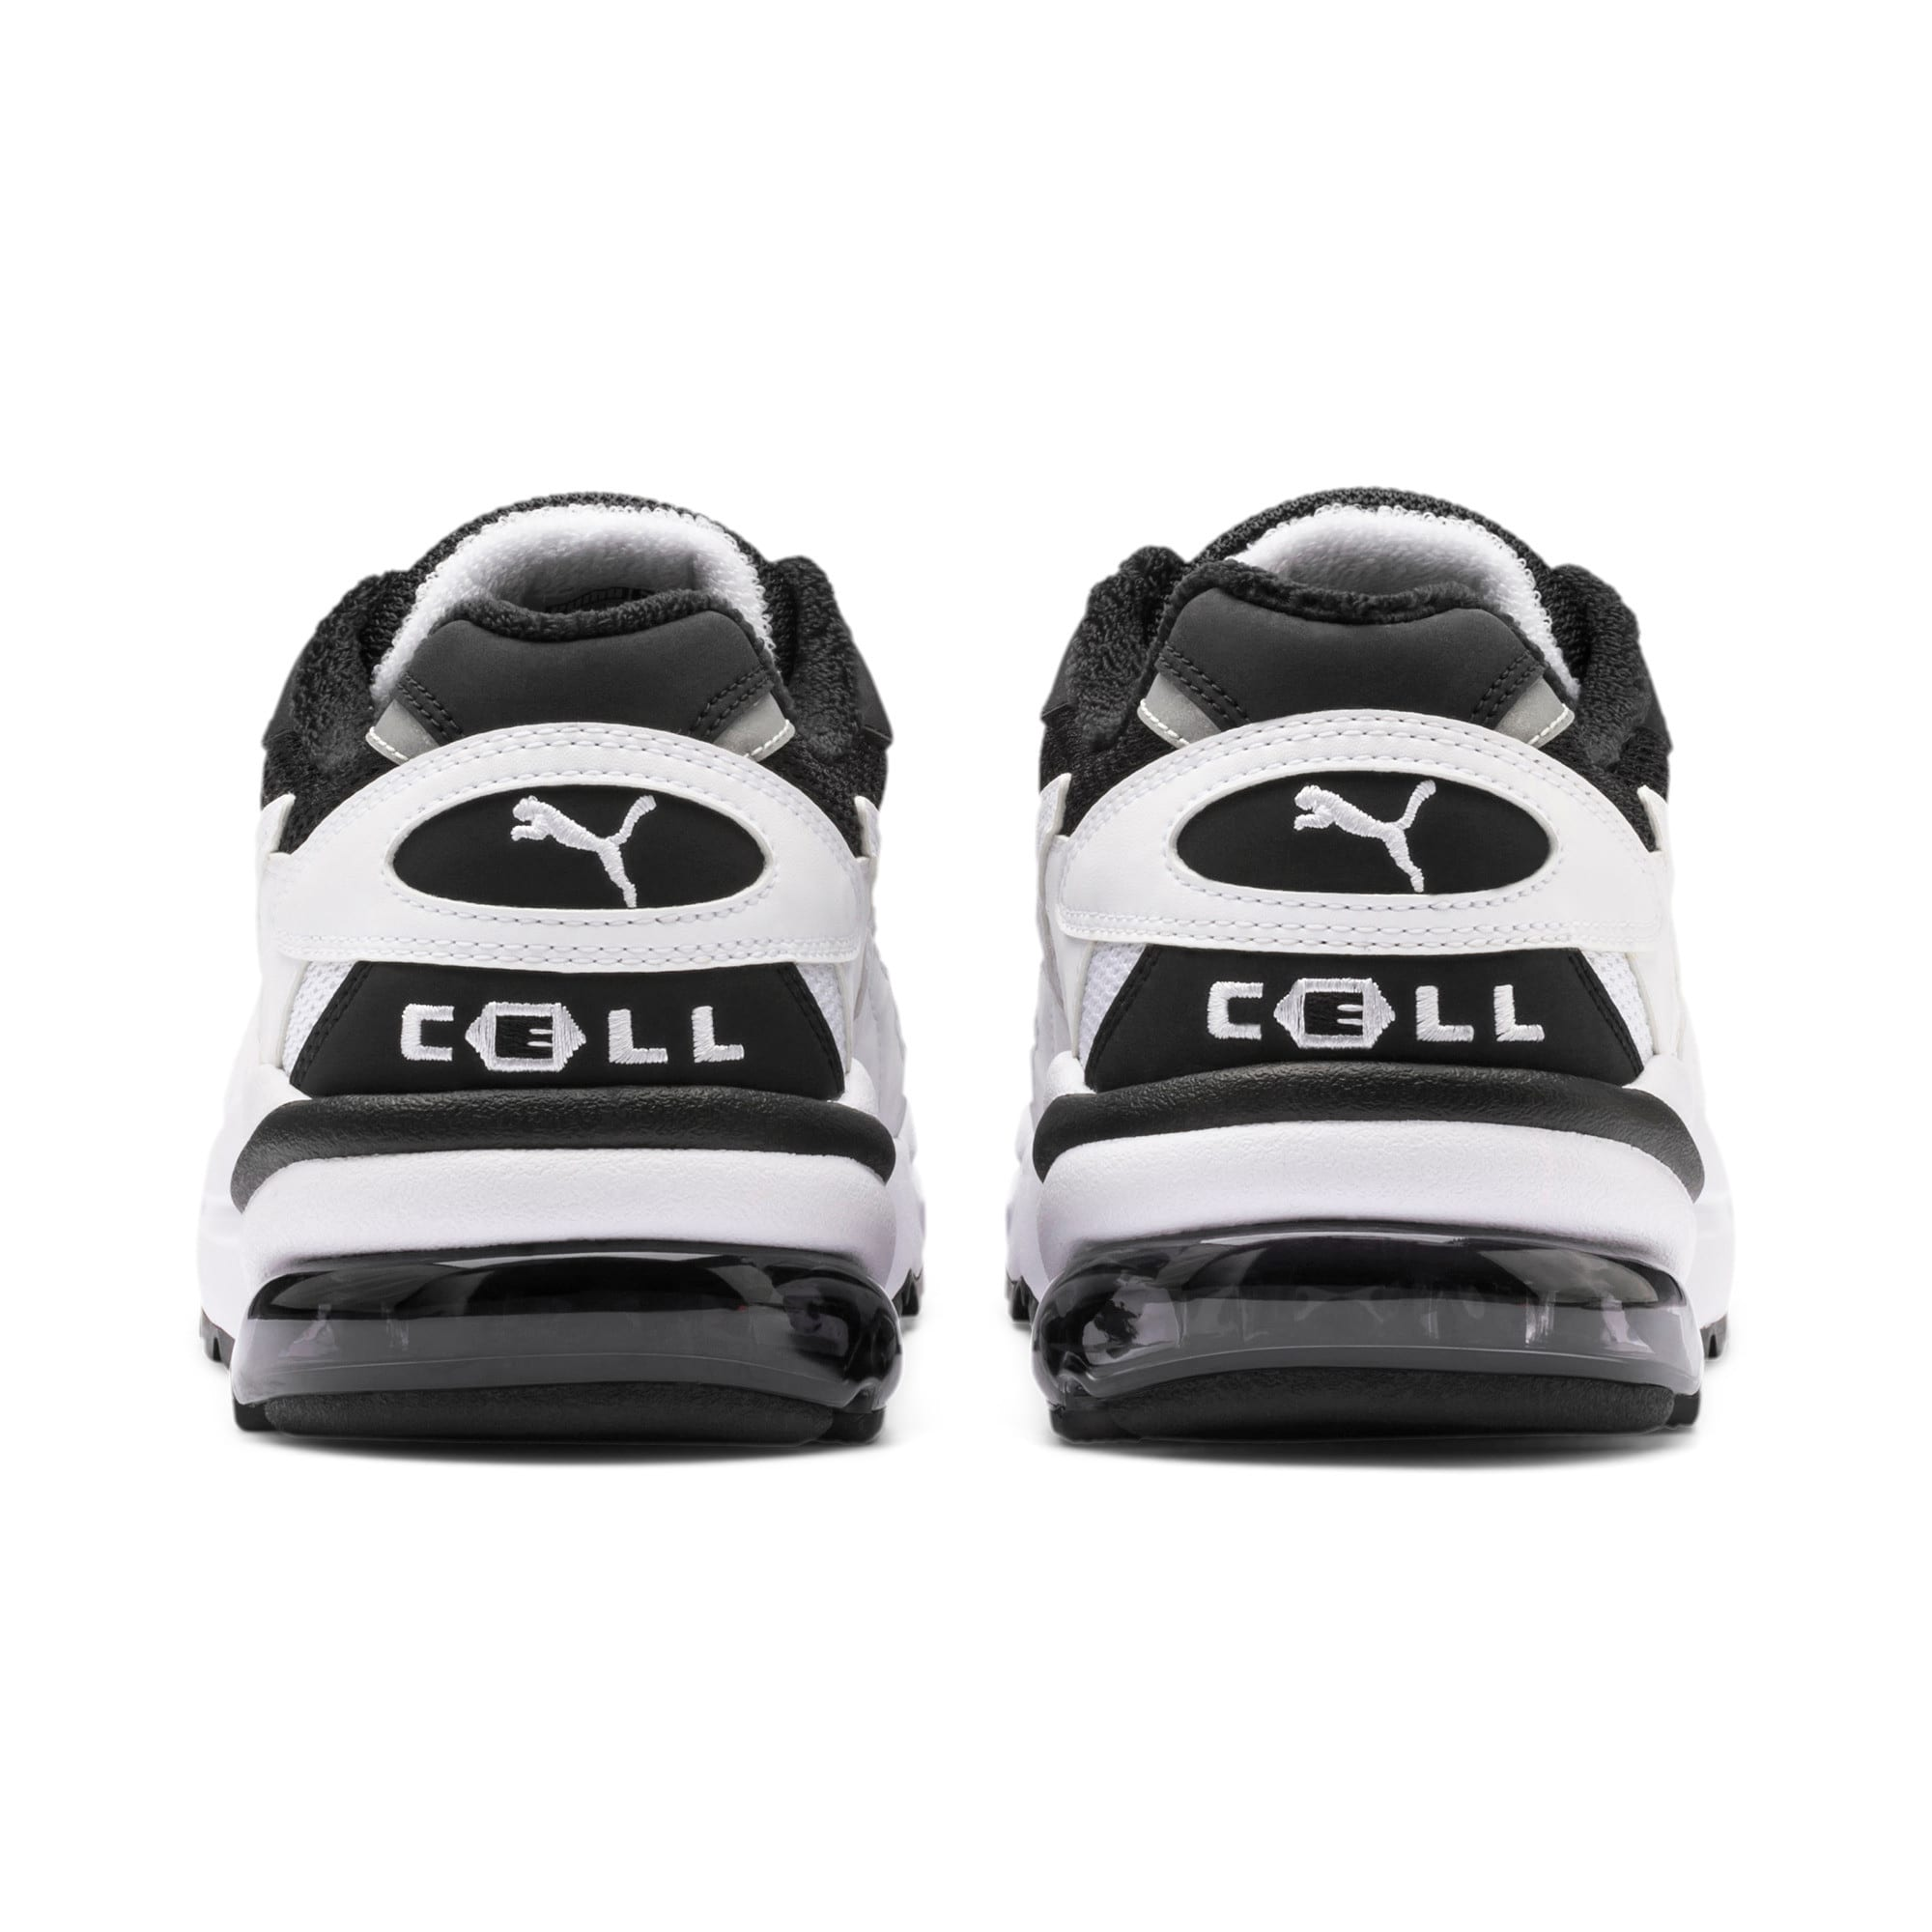 Thumbnail 4 of CELL Alien OG Sneaker, Puma Black-Puma White, medium